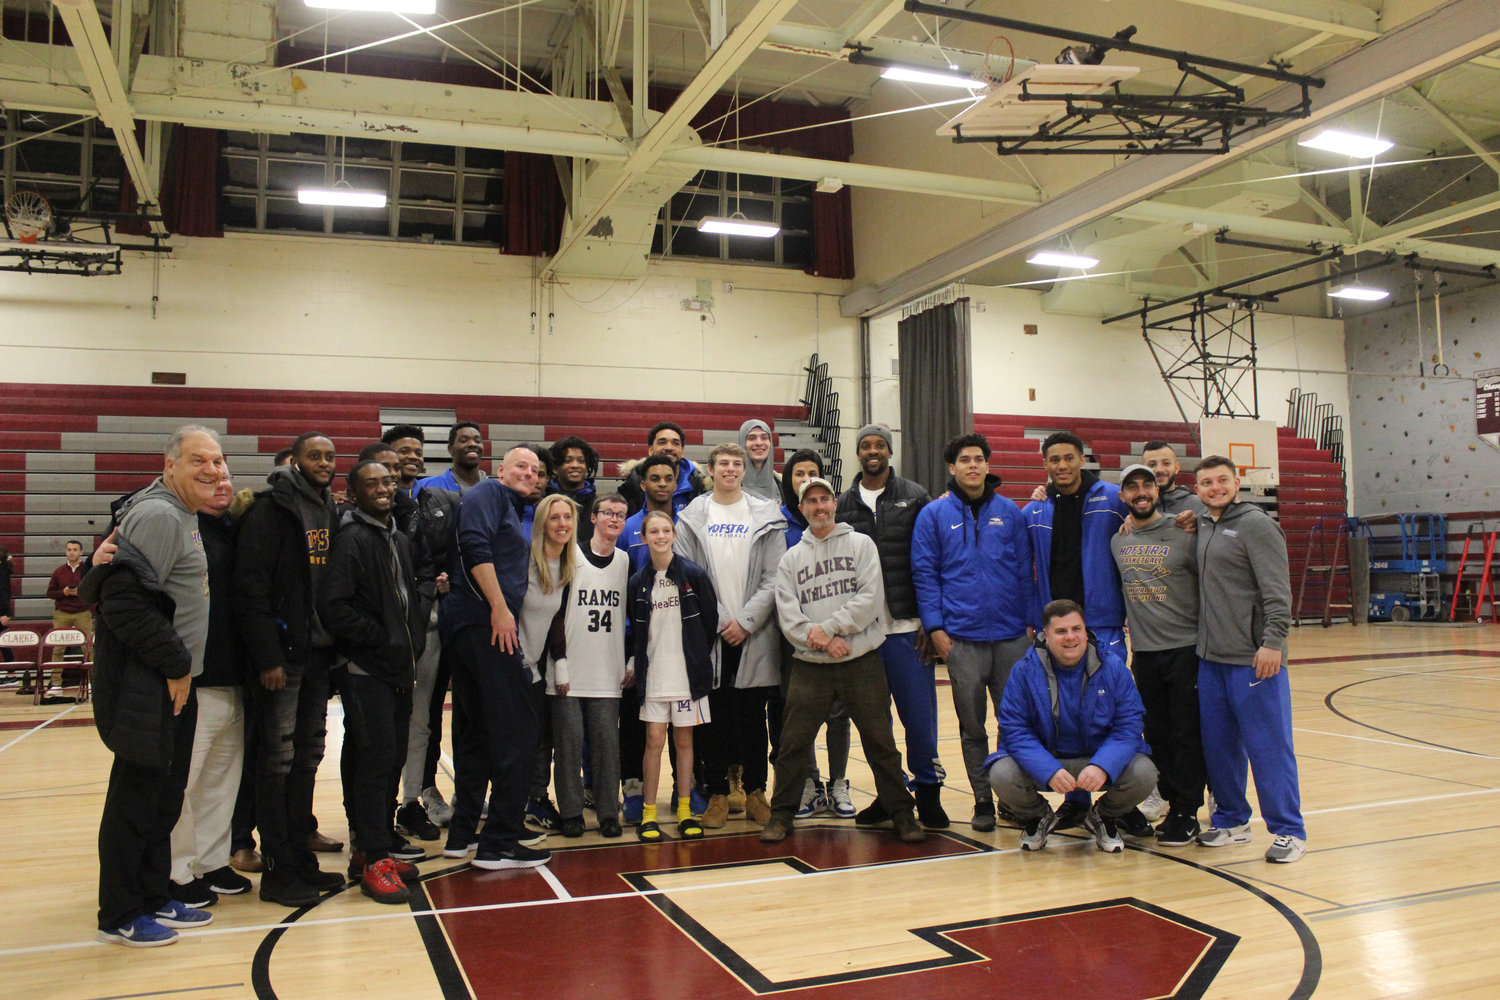 Members of the Hofstra men's basketball team supported Twible, having adopted him as an honorary member in January 2017.